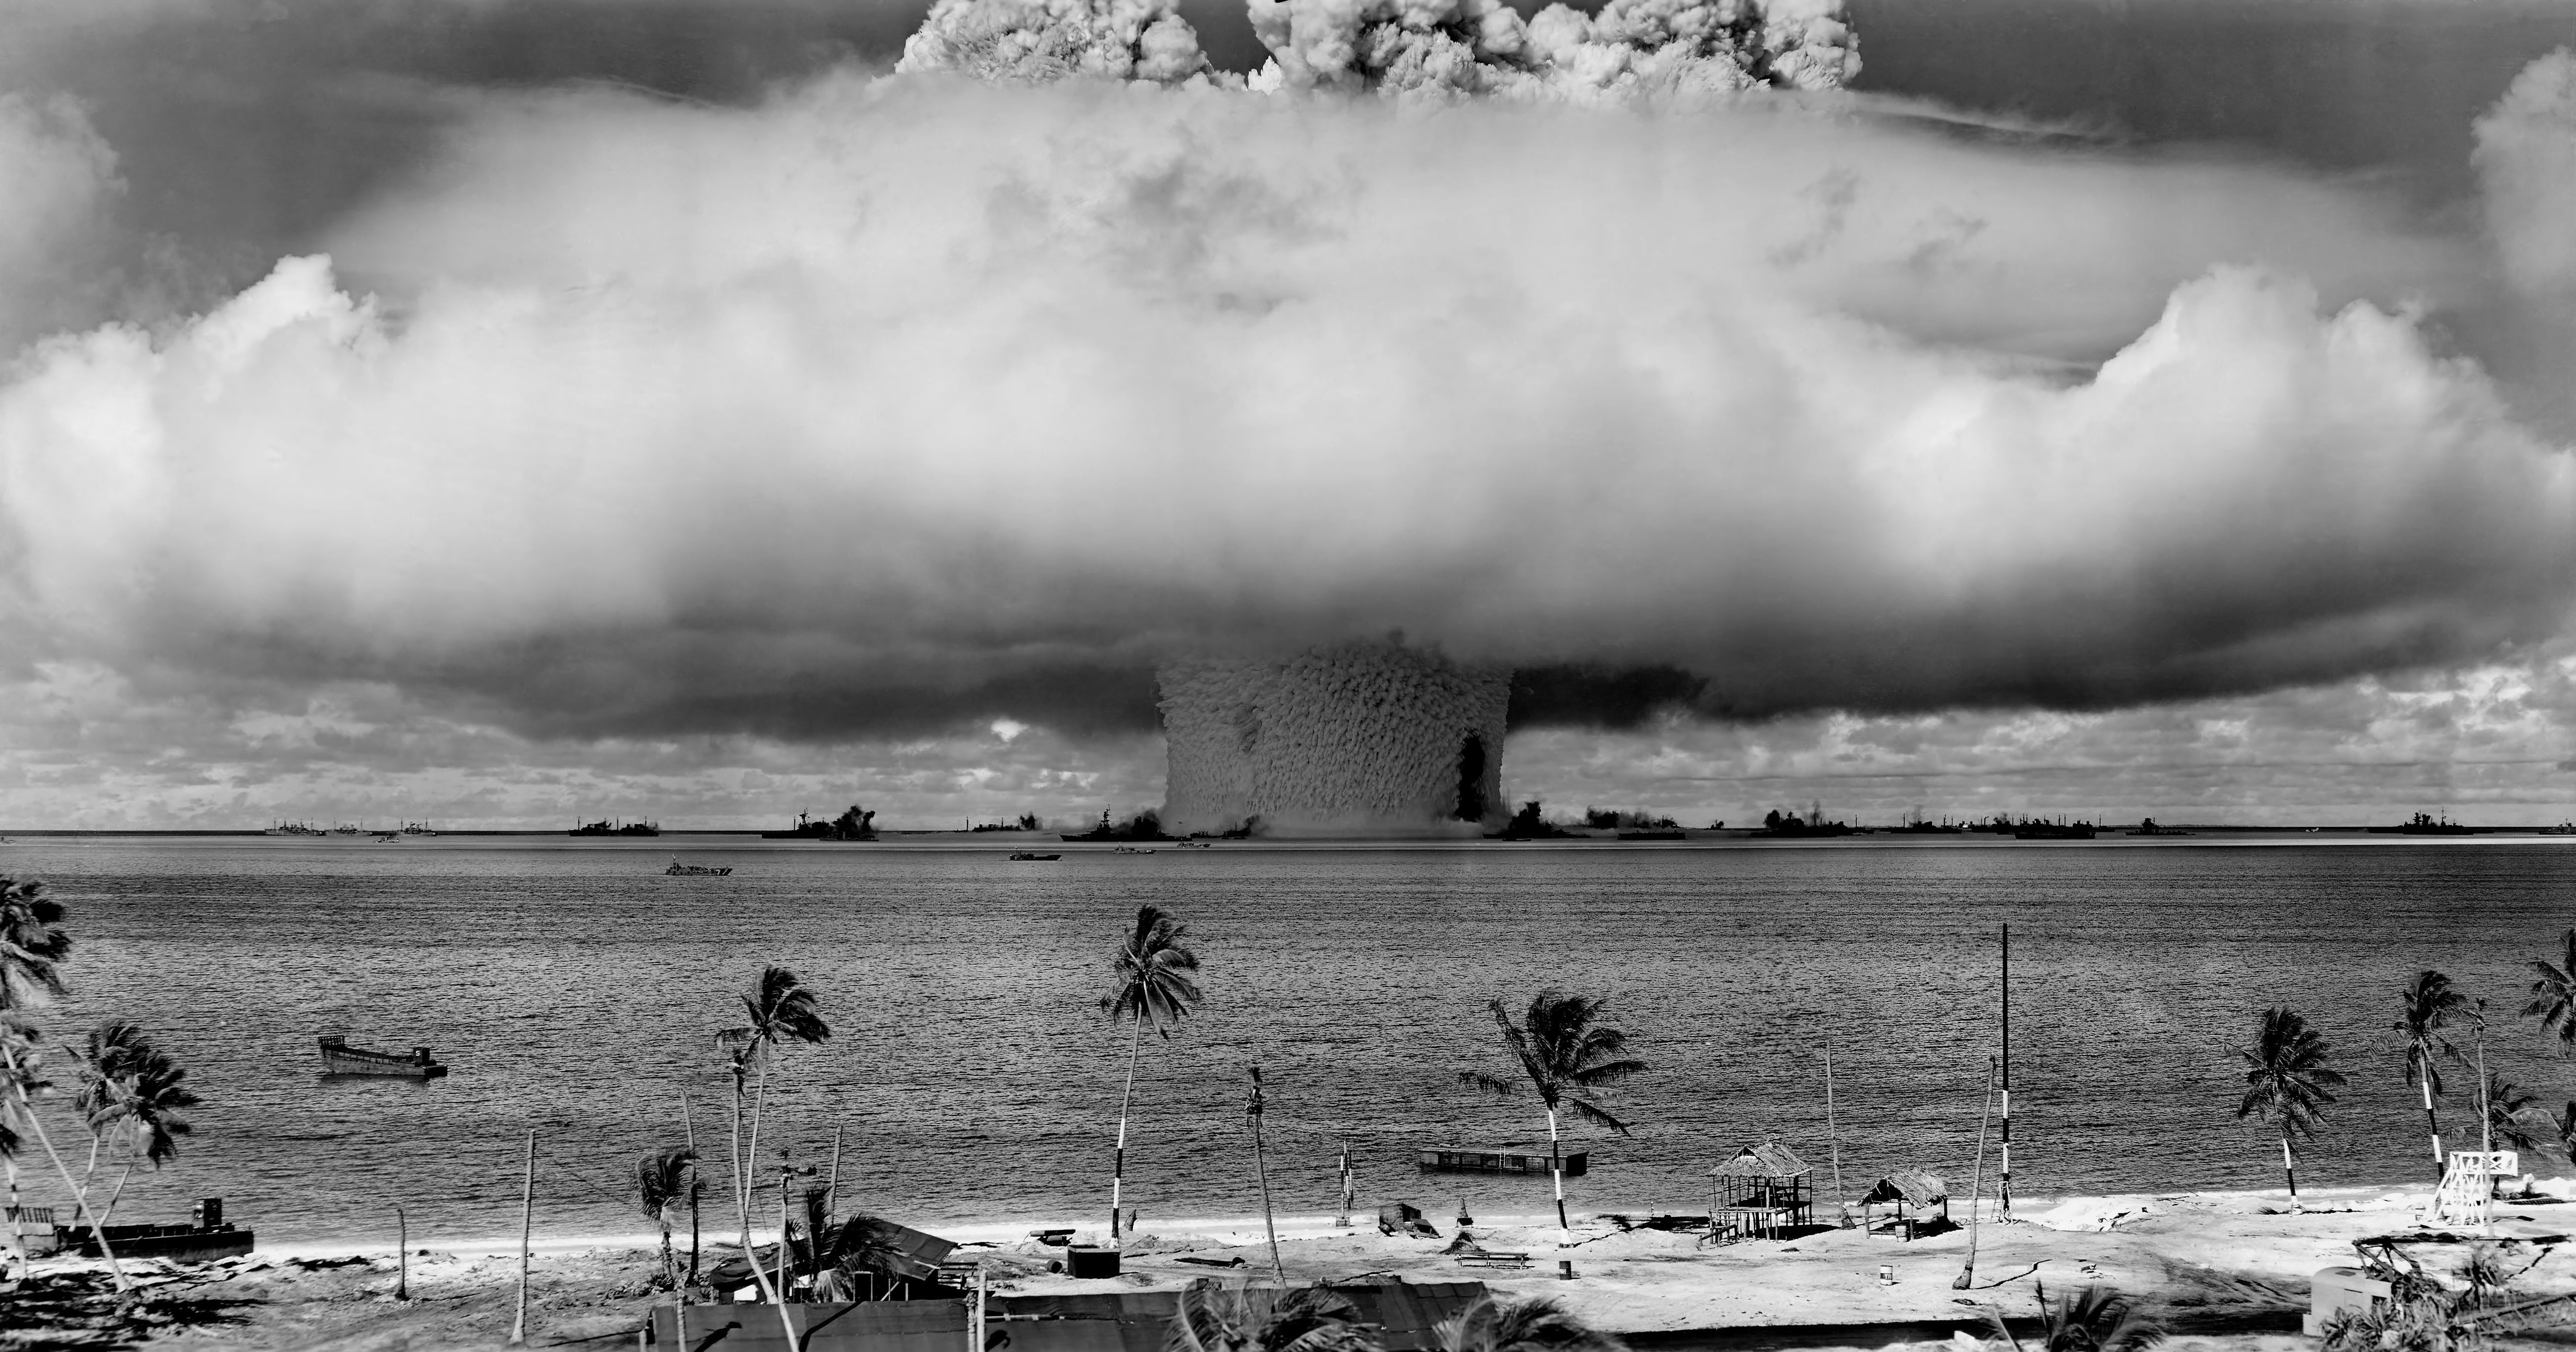 On War & Society Podcast: Destruction and Dissent in the Marshall Islands with Dr. Martha Smith-Norris